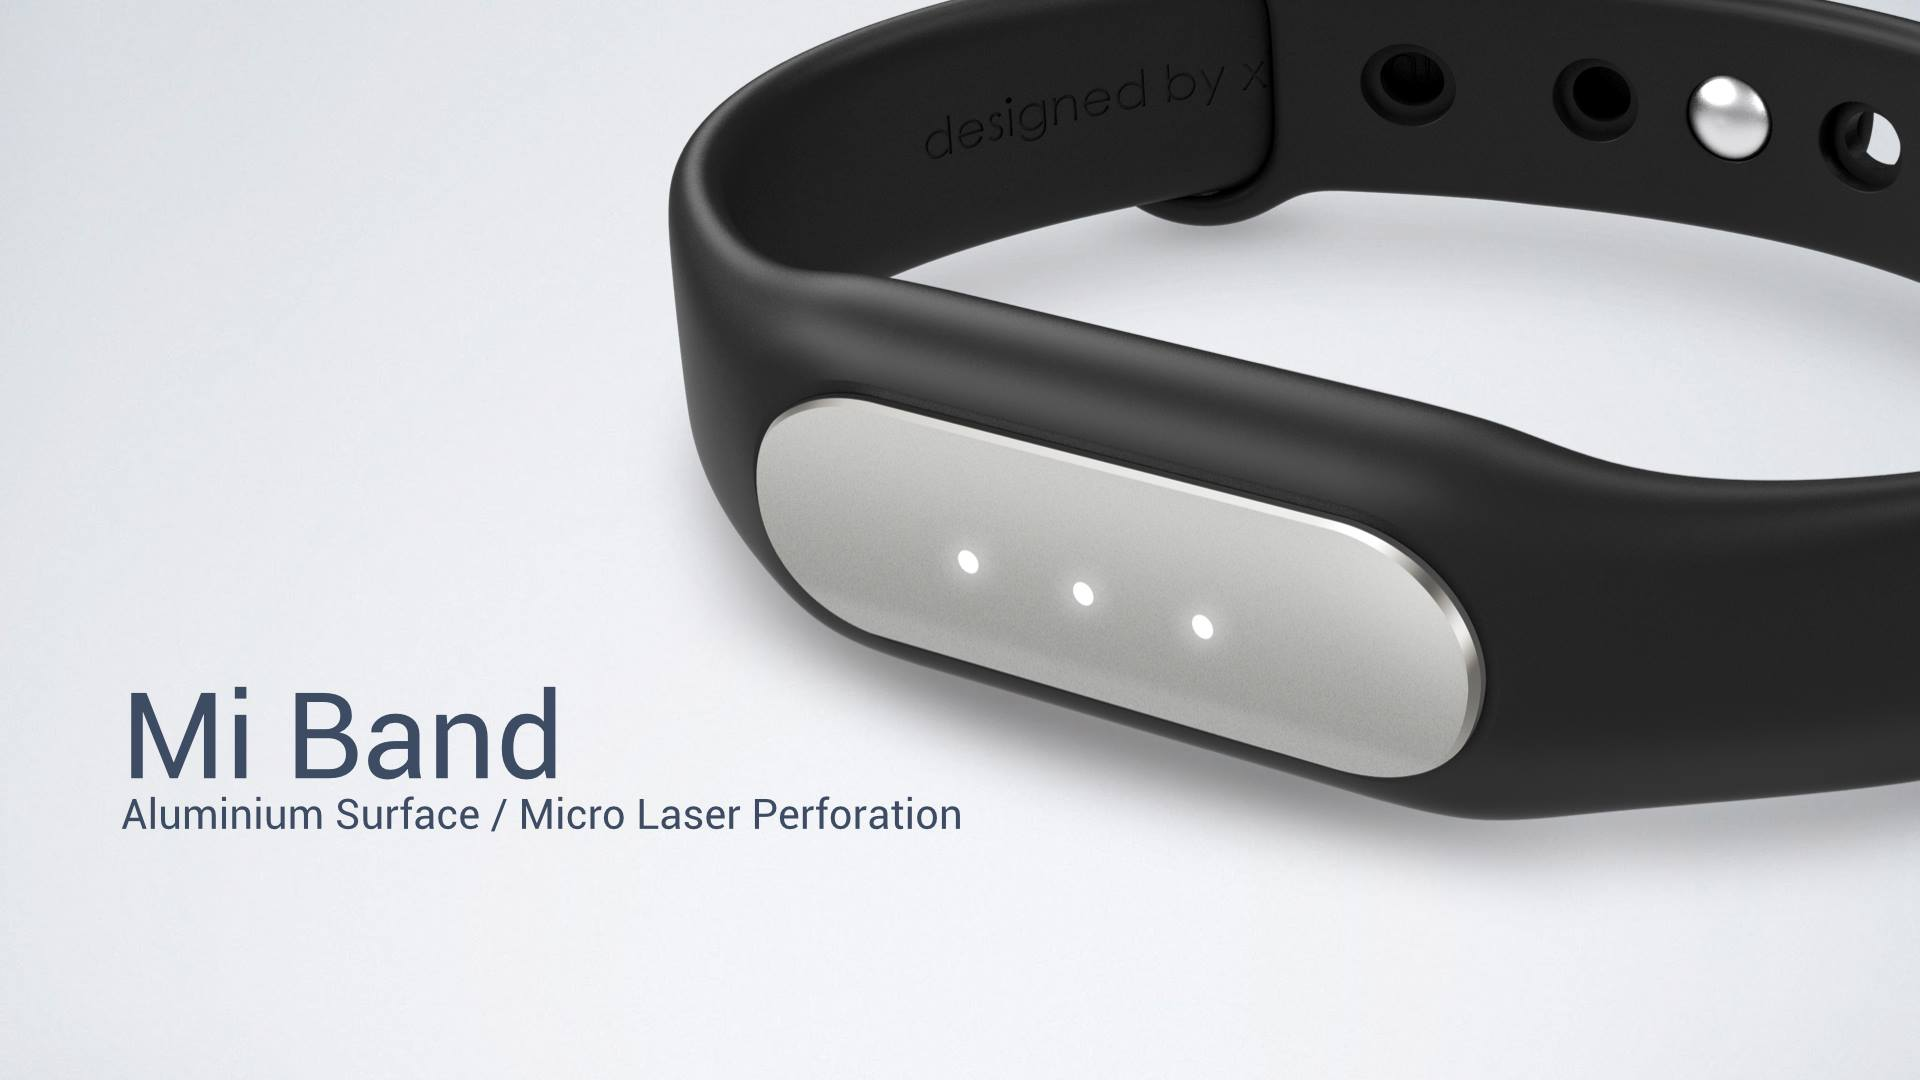 Xiaomi Mi Band 1S Fitness Tracker Launched